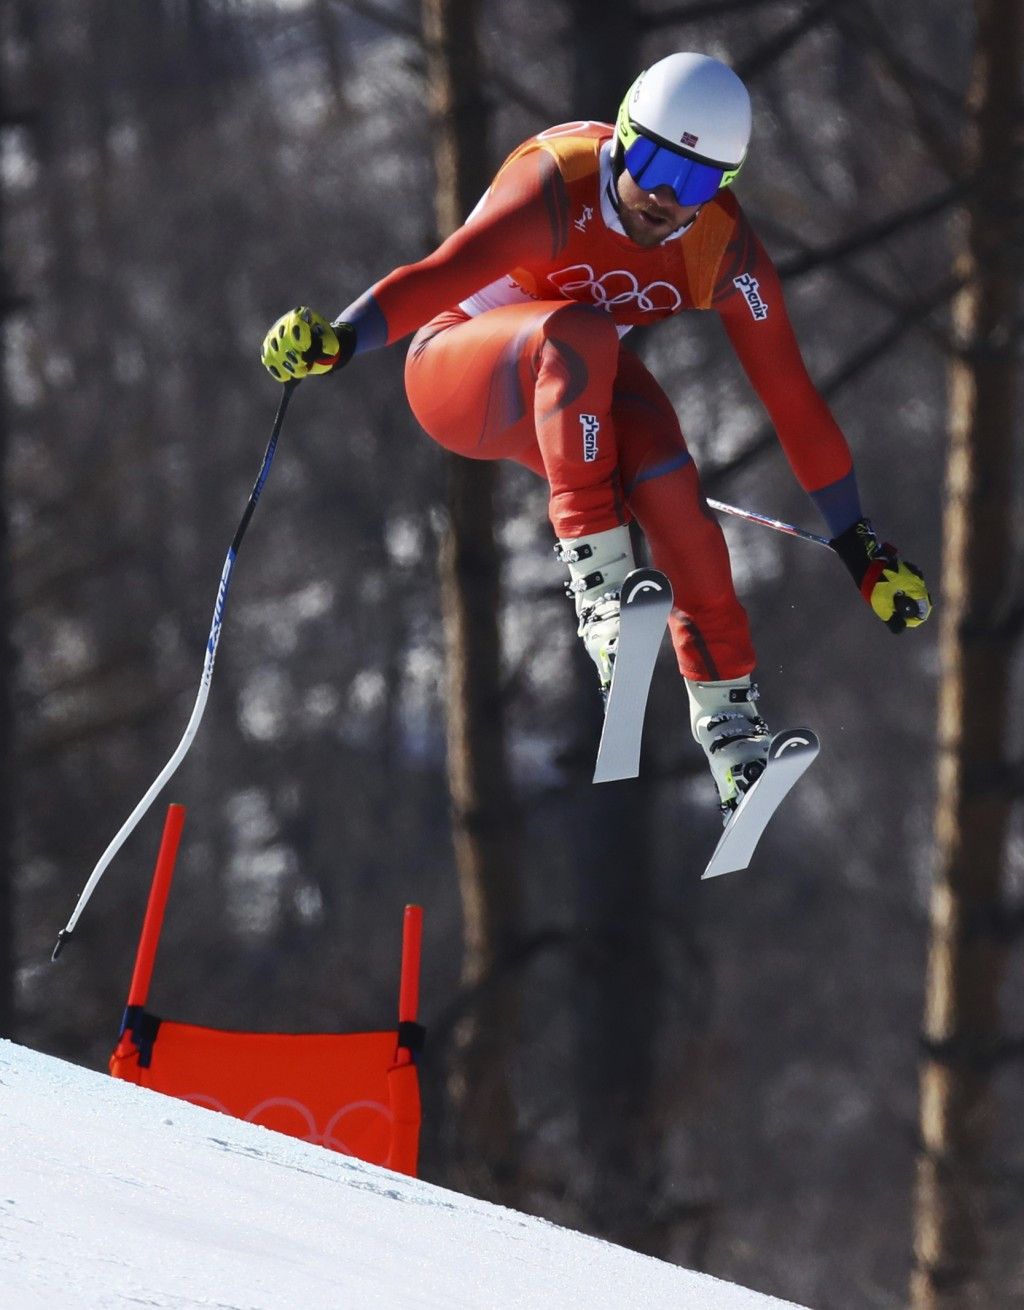 Norway's Kjetil Jansrud skis during the men's downhill at the 2018 Winter Olympics in Jeongseon, South Korea, Thursday, Feb. 15, 2018. (AP Photo/Aless